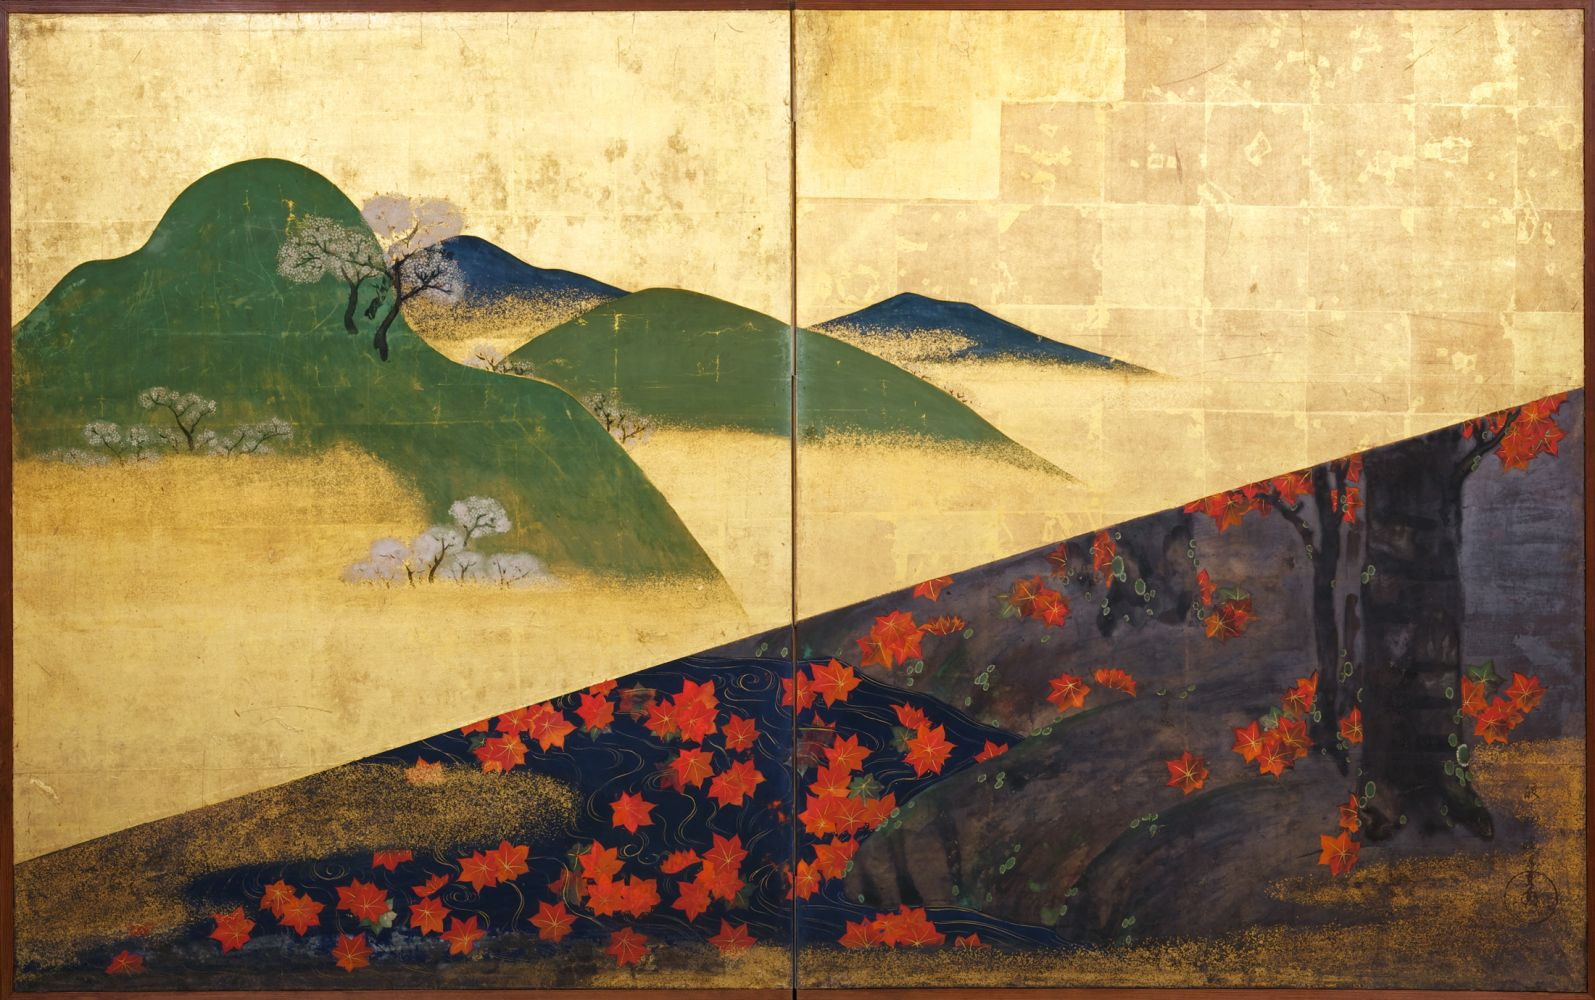 Nakano Kimei (1834-1892)  Two-fold screen depicting cherry blossoms and maple trees  ca. 1870-80  Ink, color and gold leaf on paper  41 3/4 x 66 3/8 inches  Inv# 8611  POR